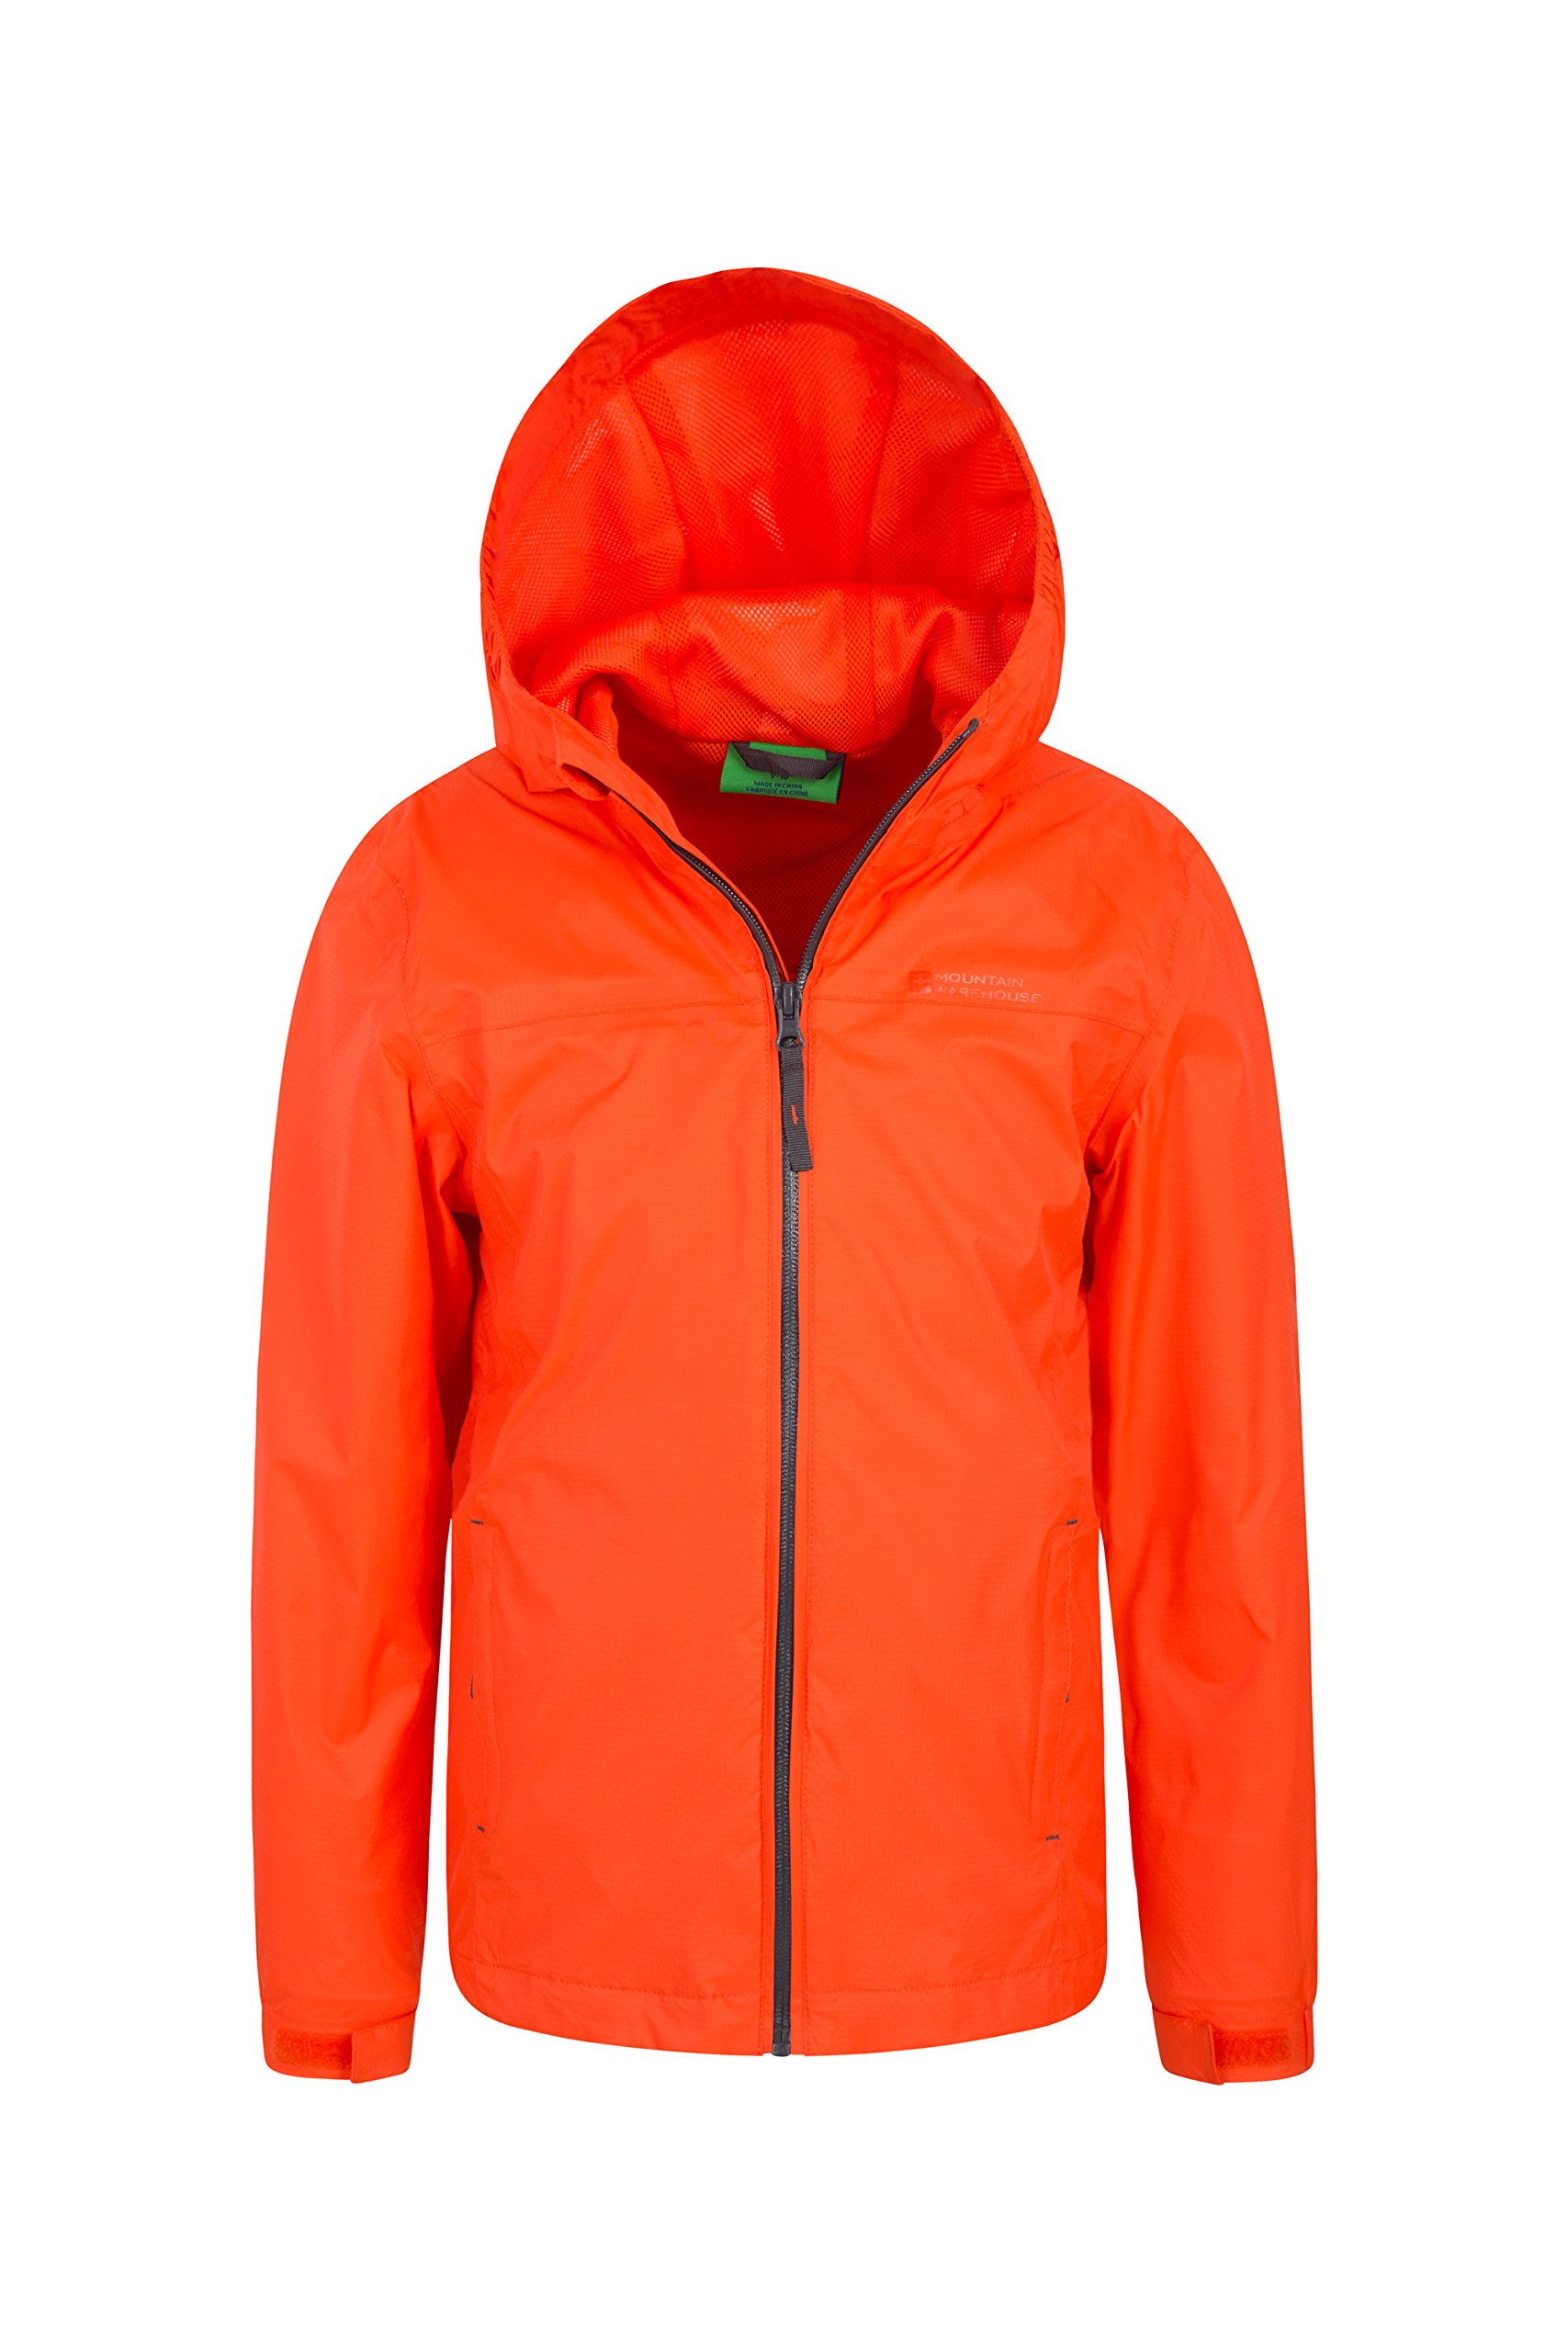 Mountain Warehouse Torrent Kids Jacket - Waterproof Rain Coat Orange 9-10 Years